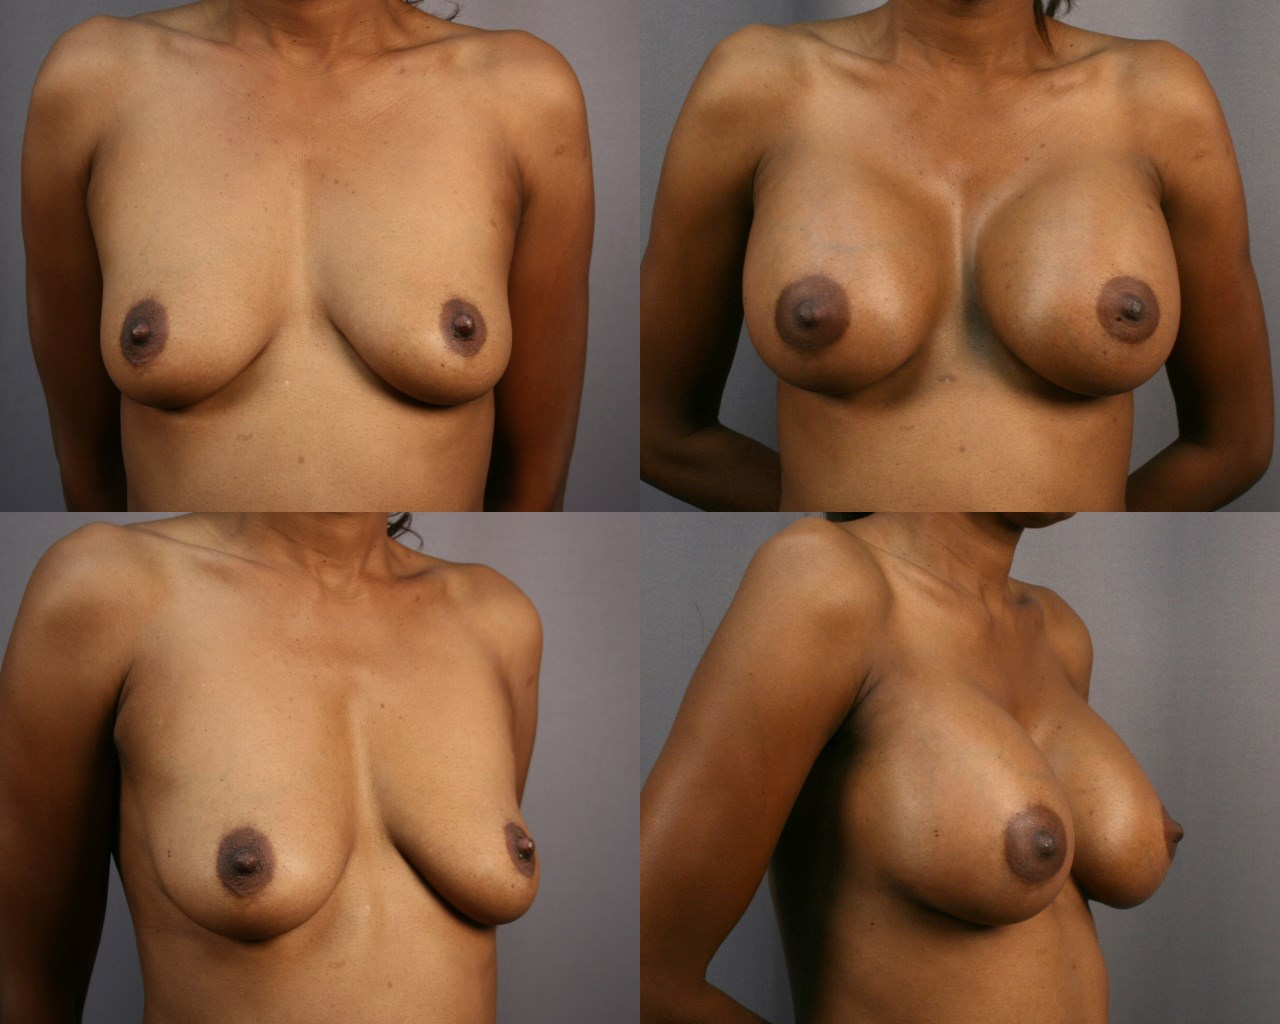 Breast Enlargement - Side Before